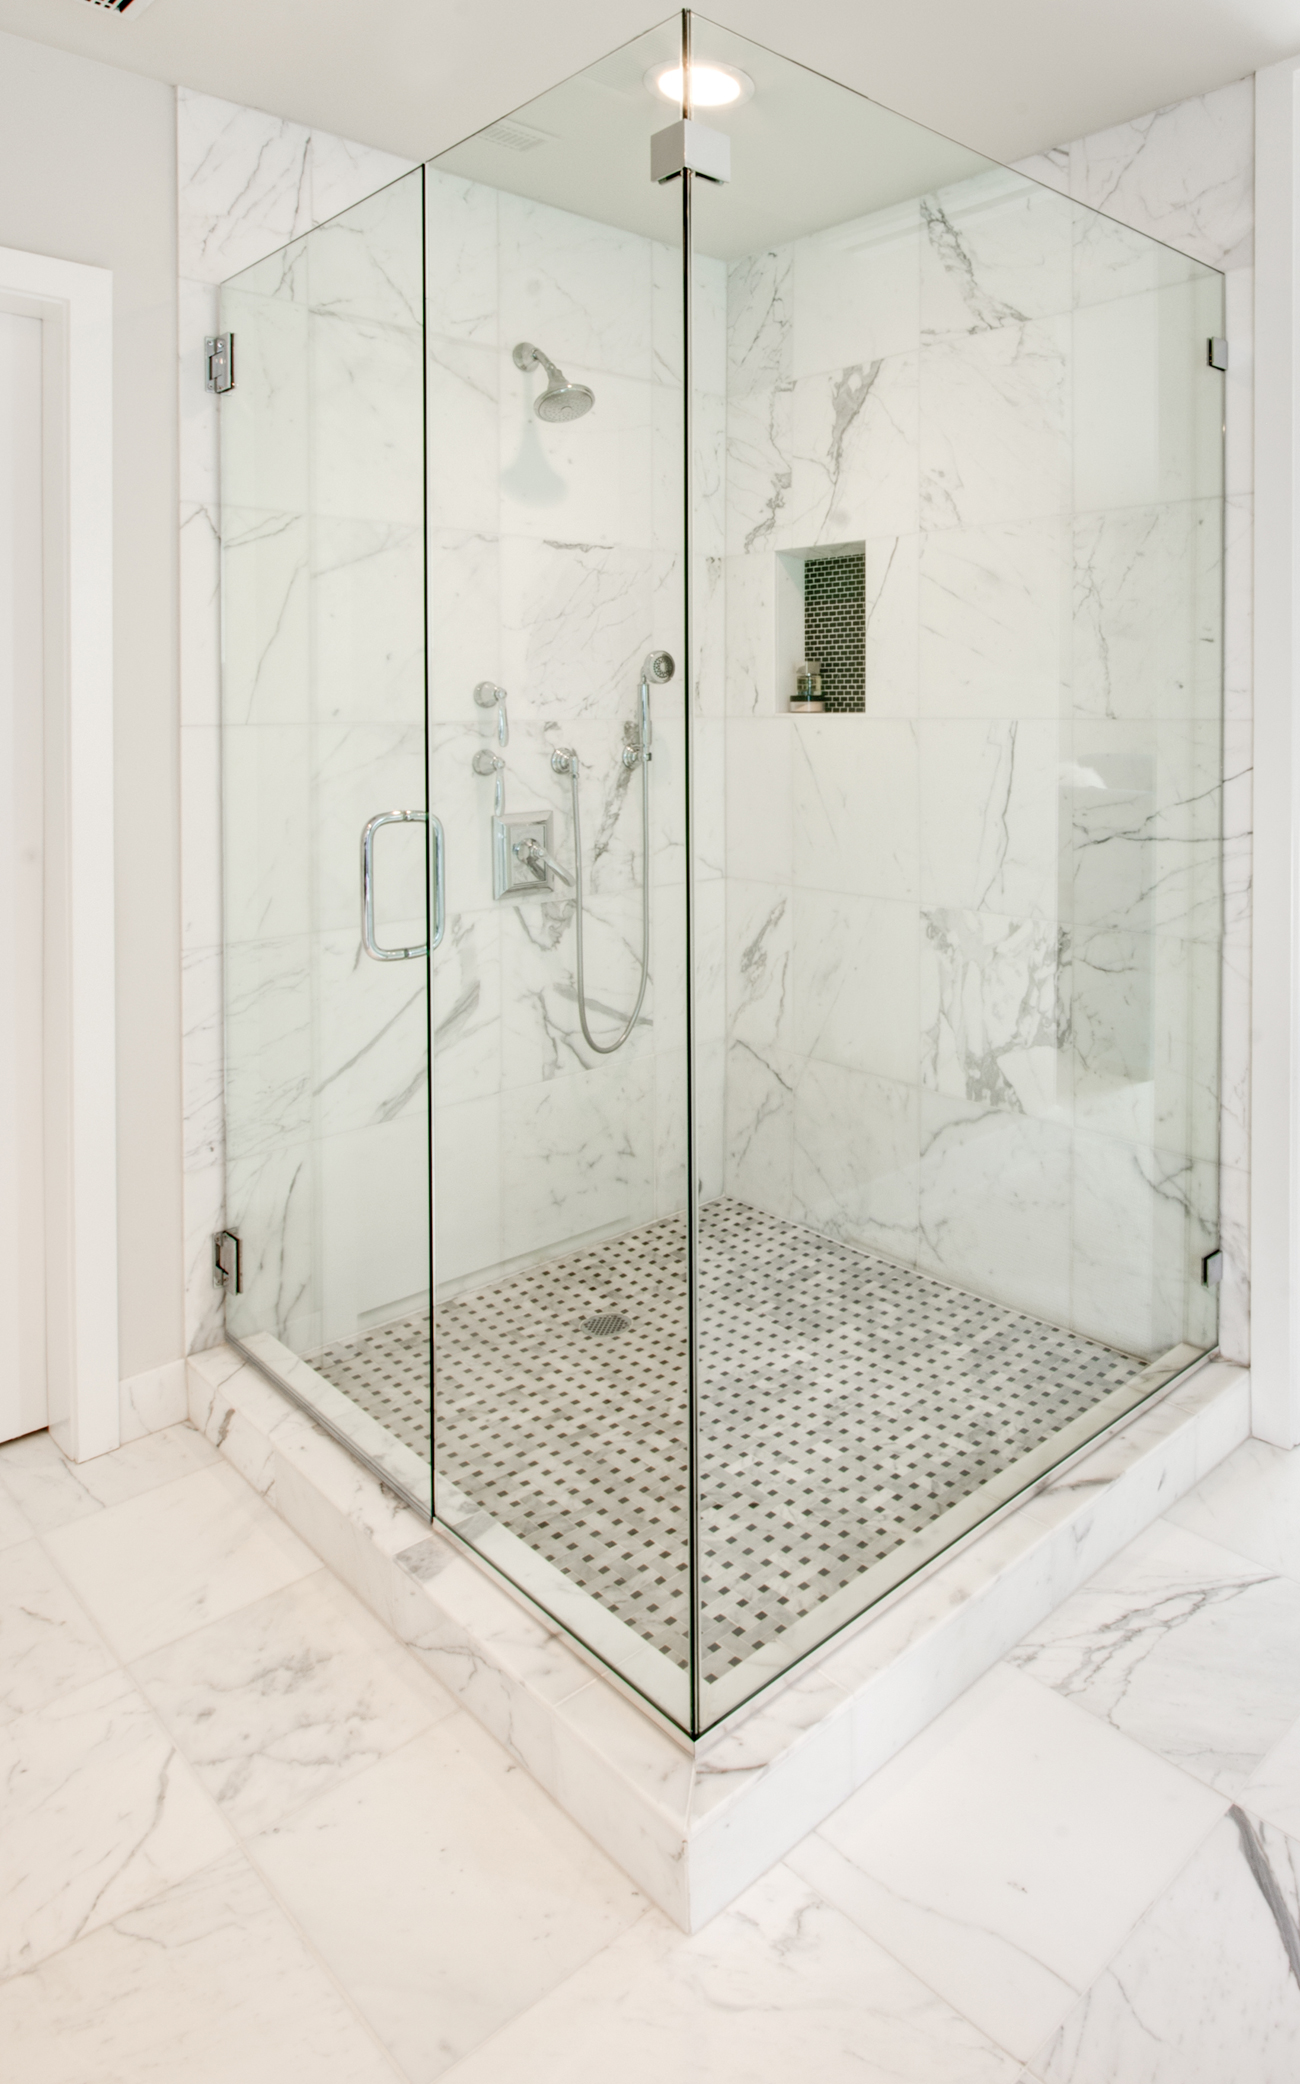 glass-shower-cabin-vinyl-clay-tiled-coverings-a-mosaic-pebble-patterns-blue-shops-installing-latest-wall-glazed-a-leave-lasting-impressions-for-bathroom-floor-tile-ideas